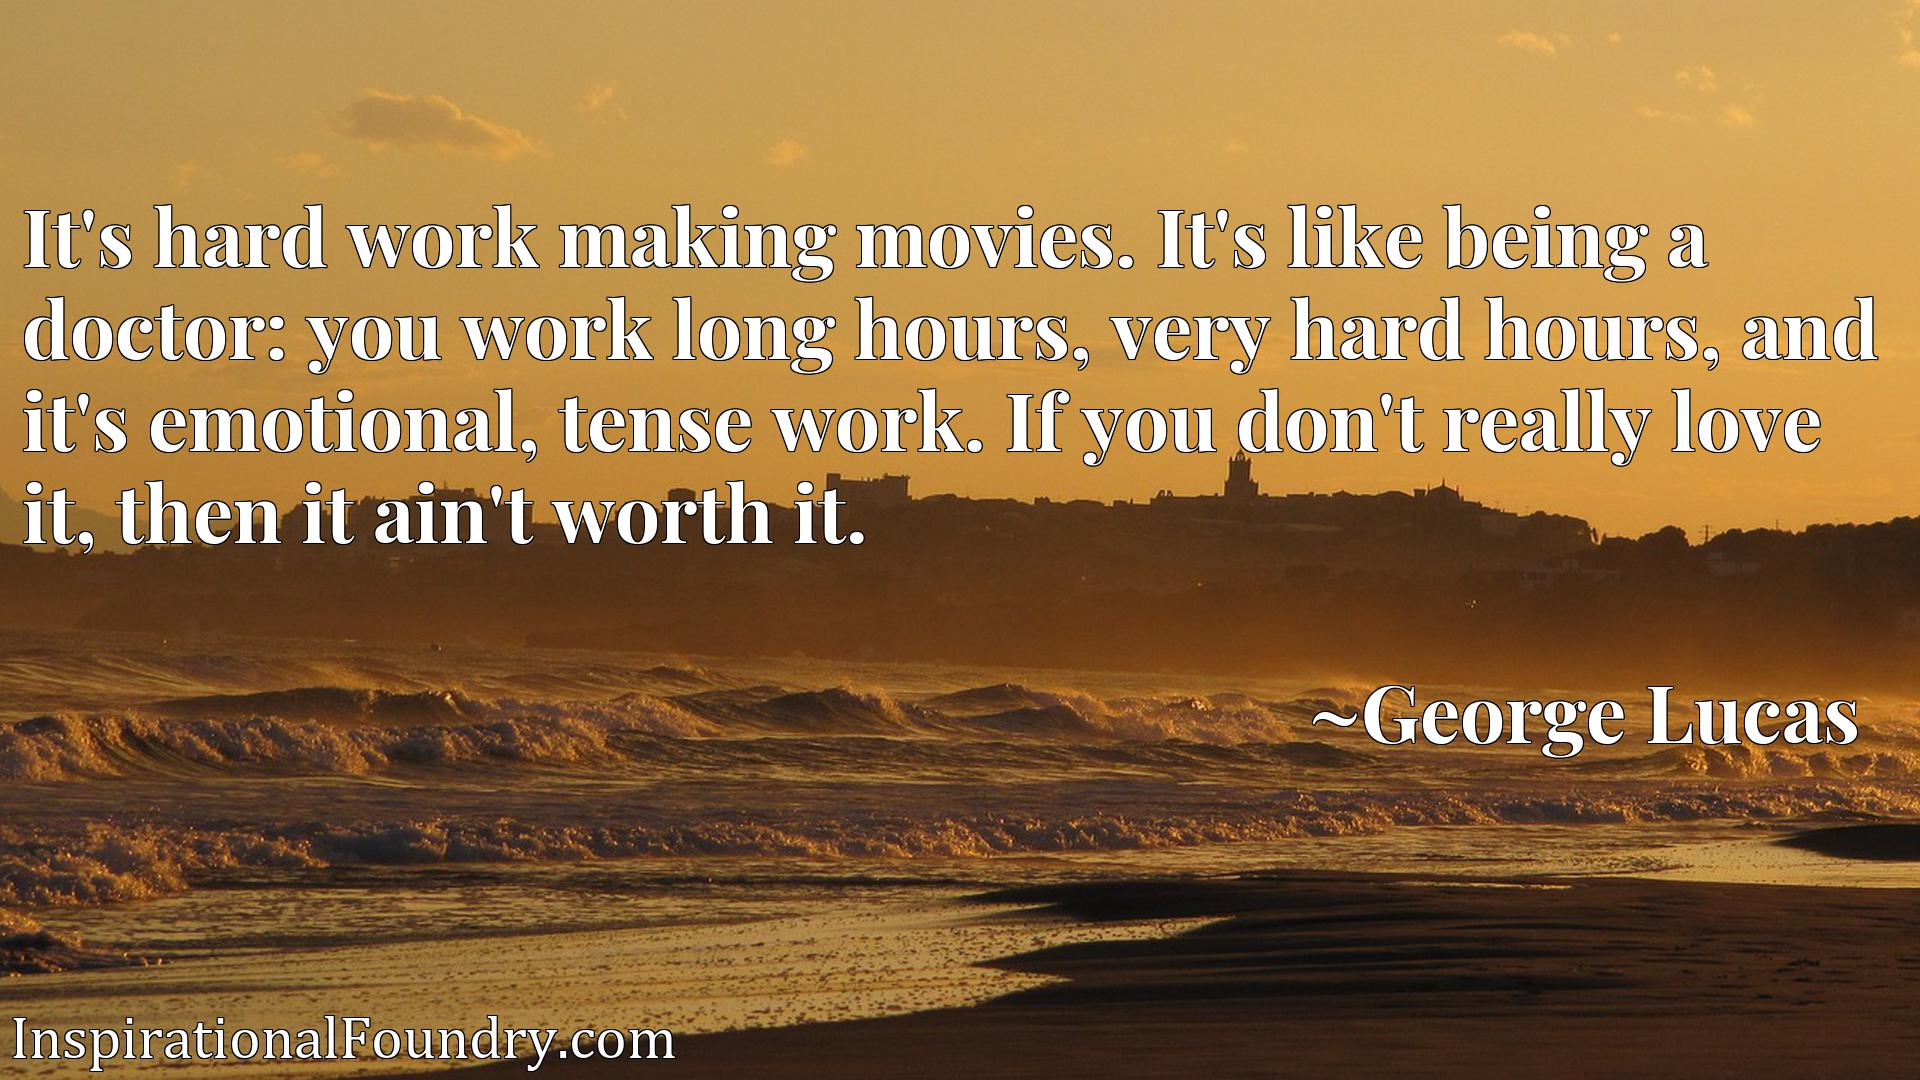 Quote Picture :It's hard work making movies. It's like being a doctor: you work long hours, very hard hours, and it's emotional, tense work. If you don't really love it, then it ain't worth it.